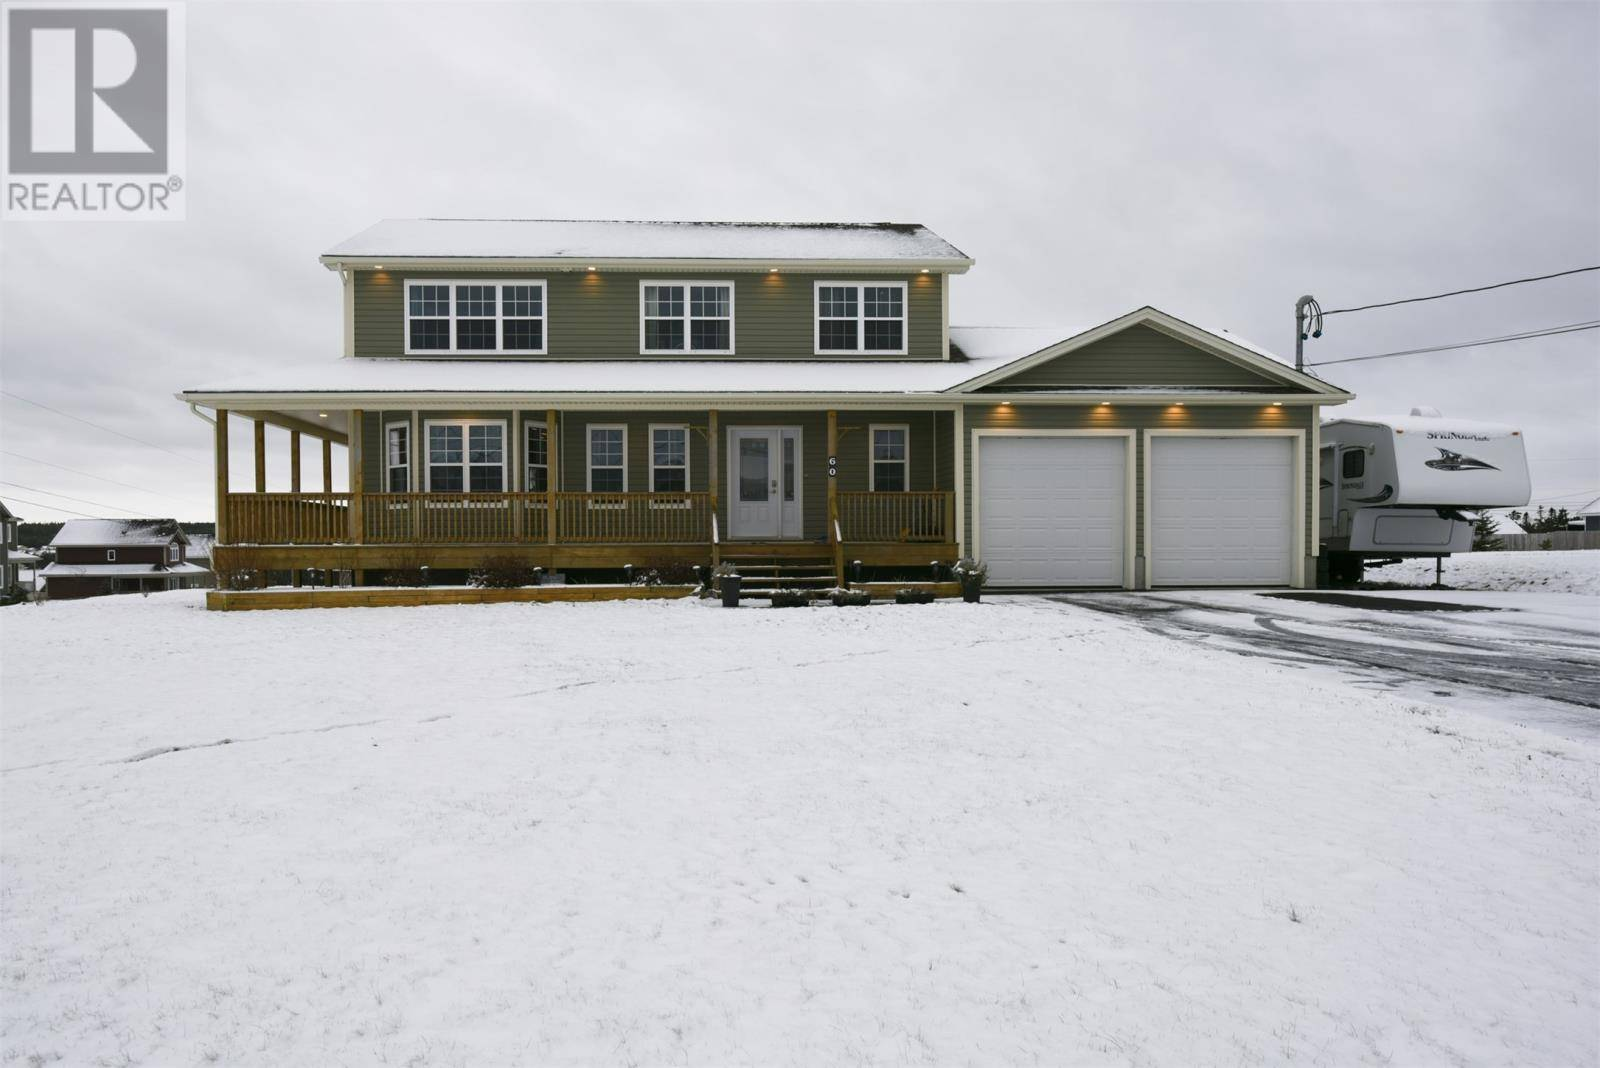 House for sale at 60 Woodland Dr Portugal Cove, St. Philips Newfoundland - MLS: 1208930